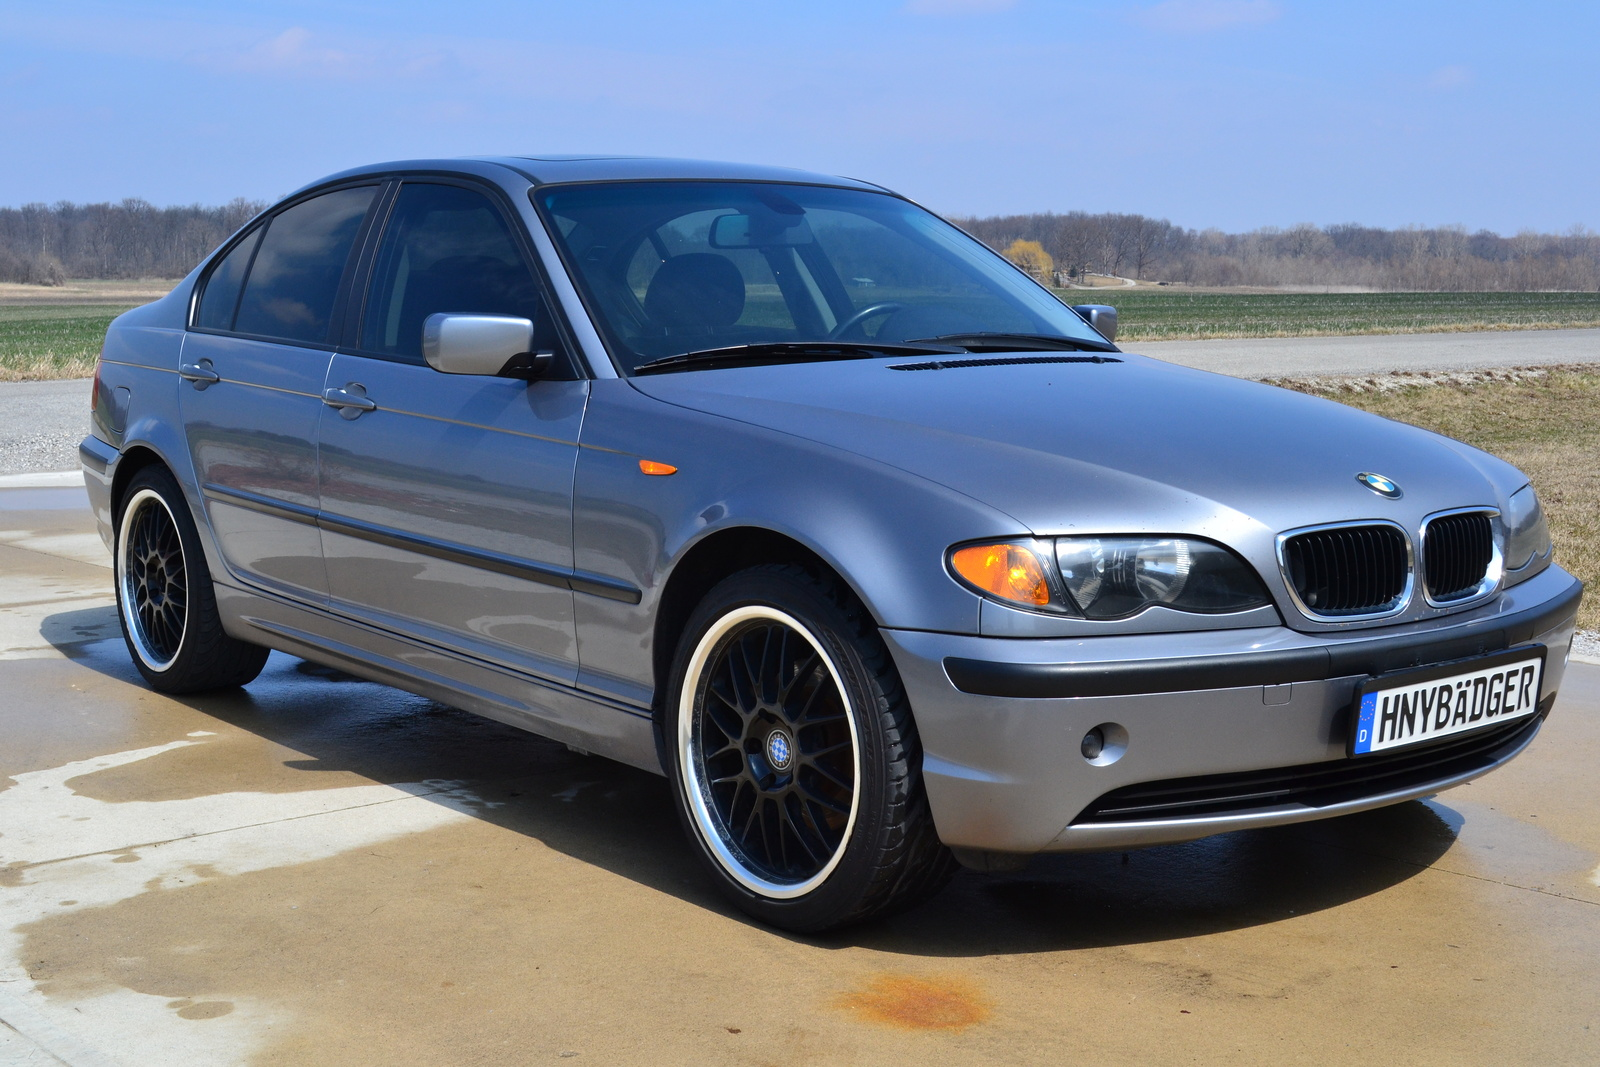 2004 bmw 325xi related infomation specifications weili automotive network. Black Bedroom Furniture Sets. Home Design Ideas